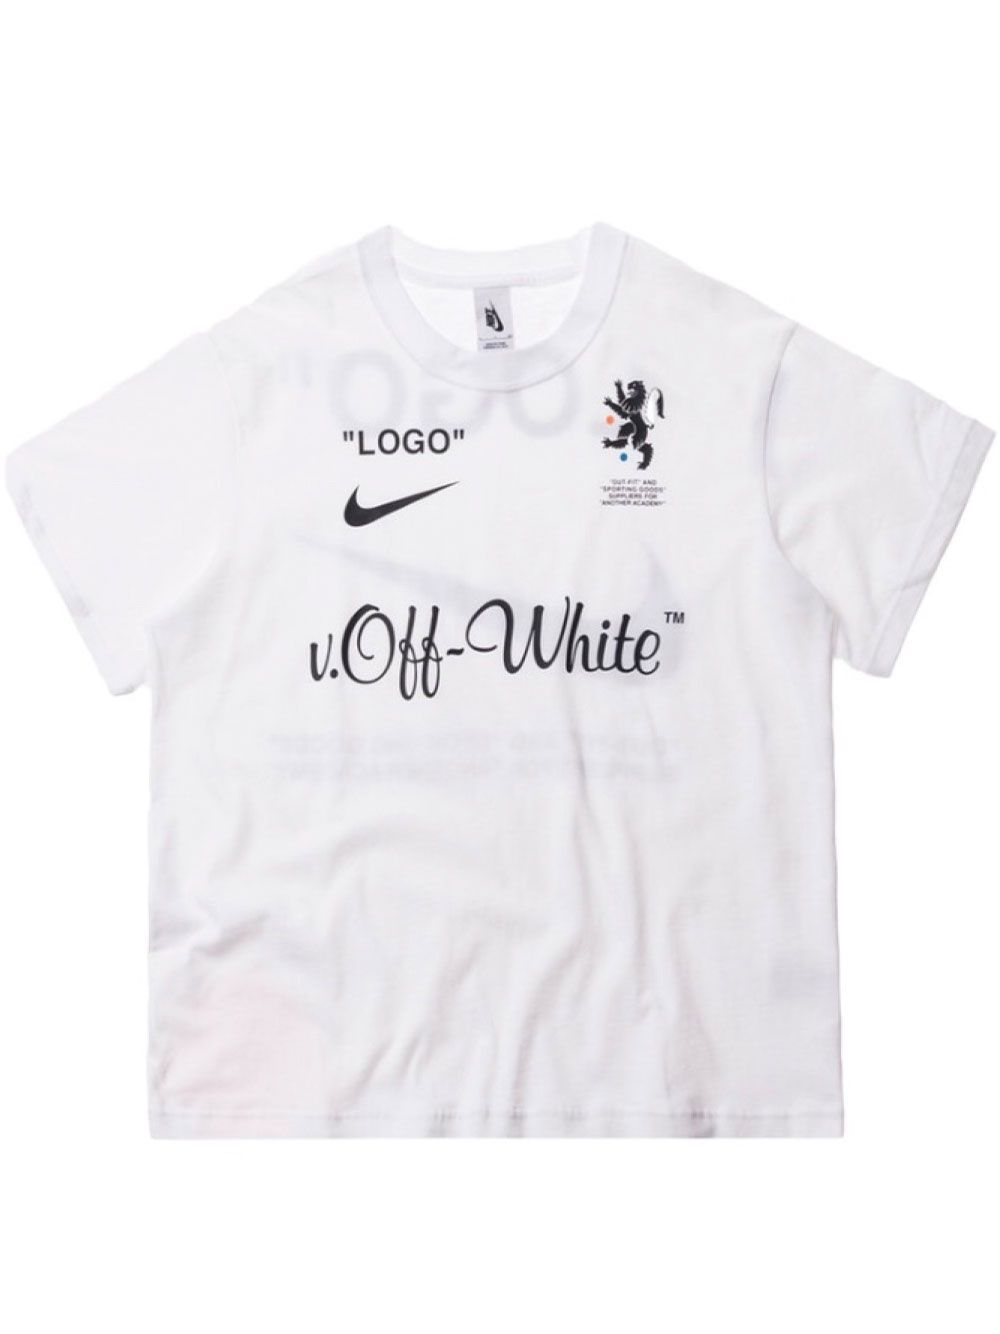 Futbolka Nike X Off White Mercurial Nrg Tee With Images